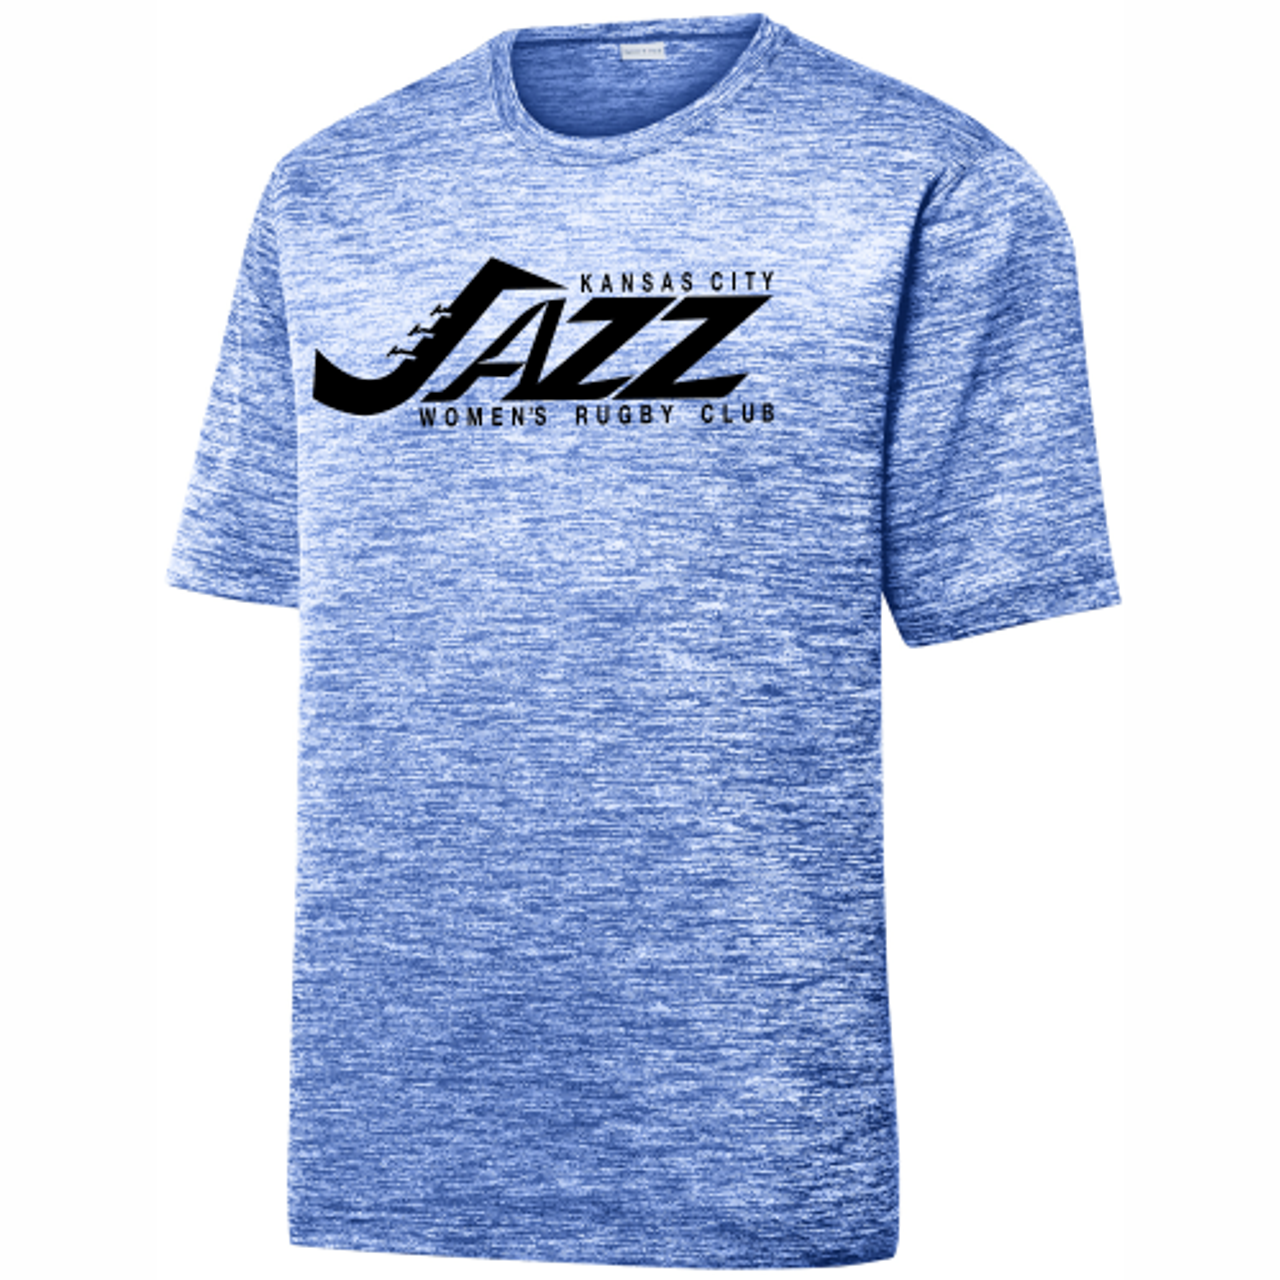 KC Jazz Heathered Performance Tee